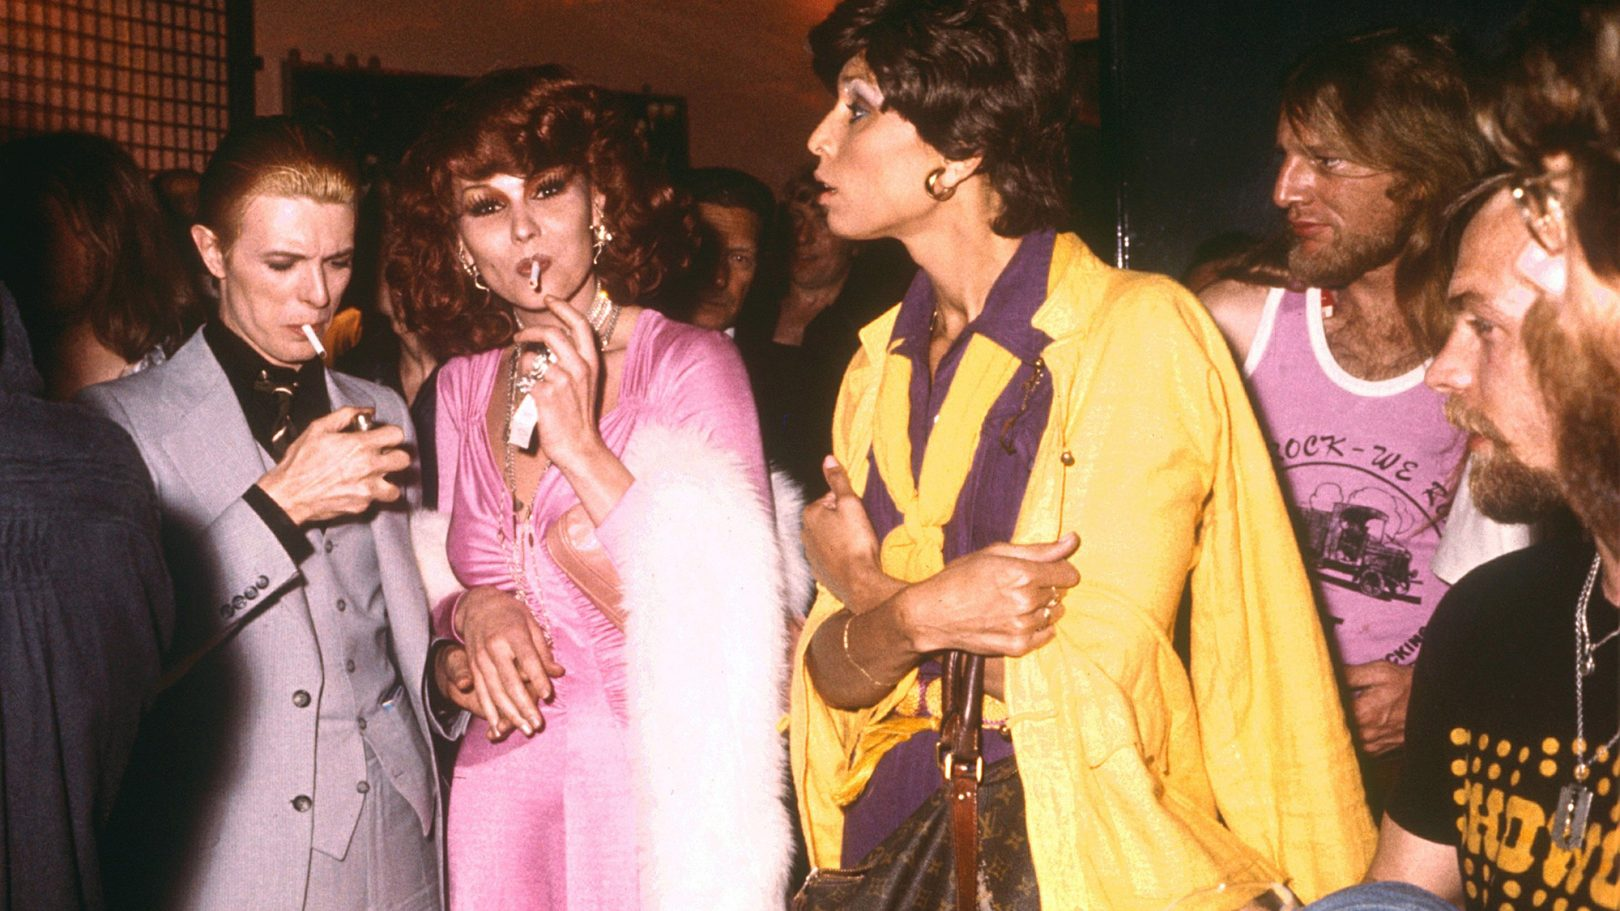 David Bowie in Studio 54